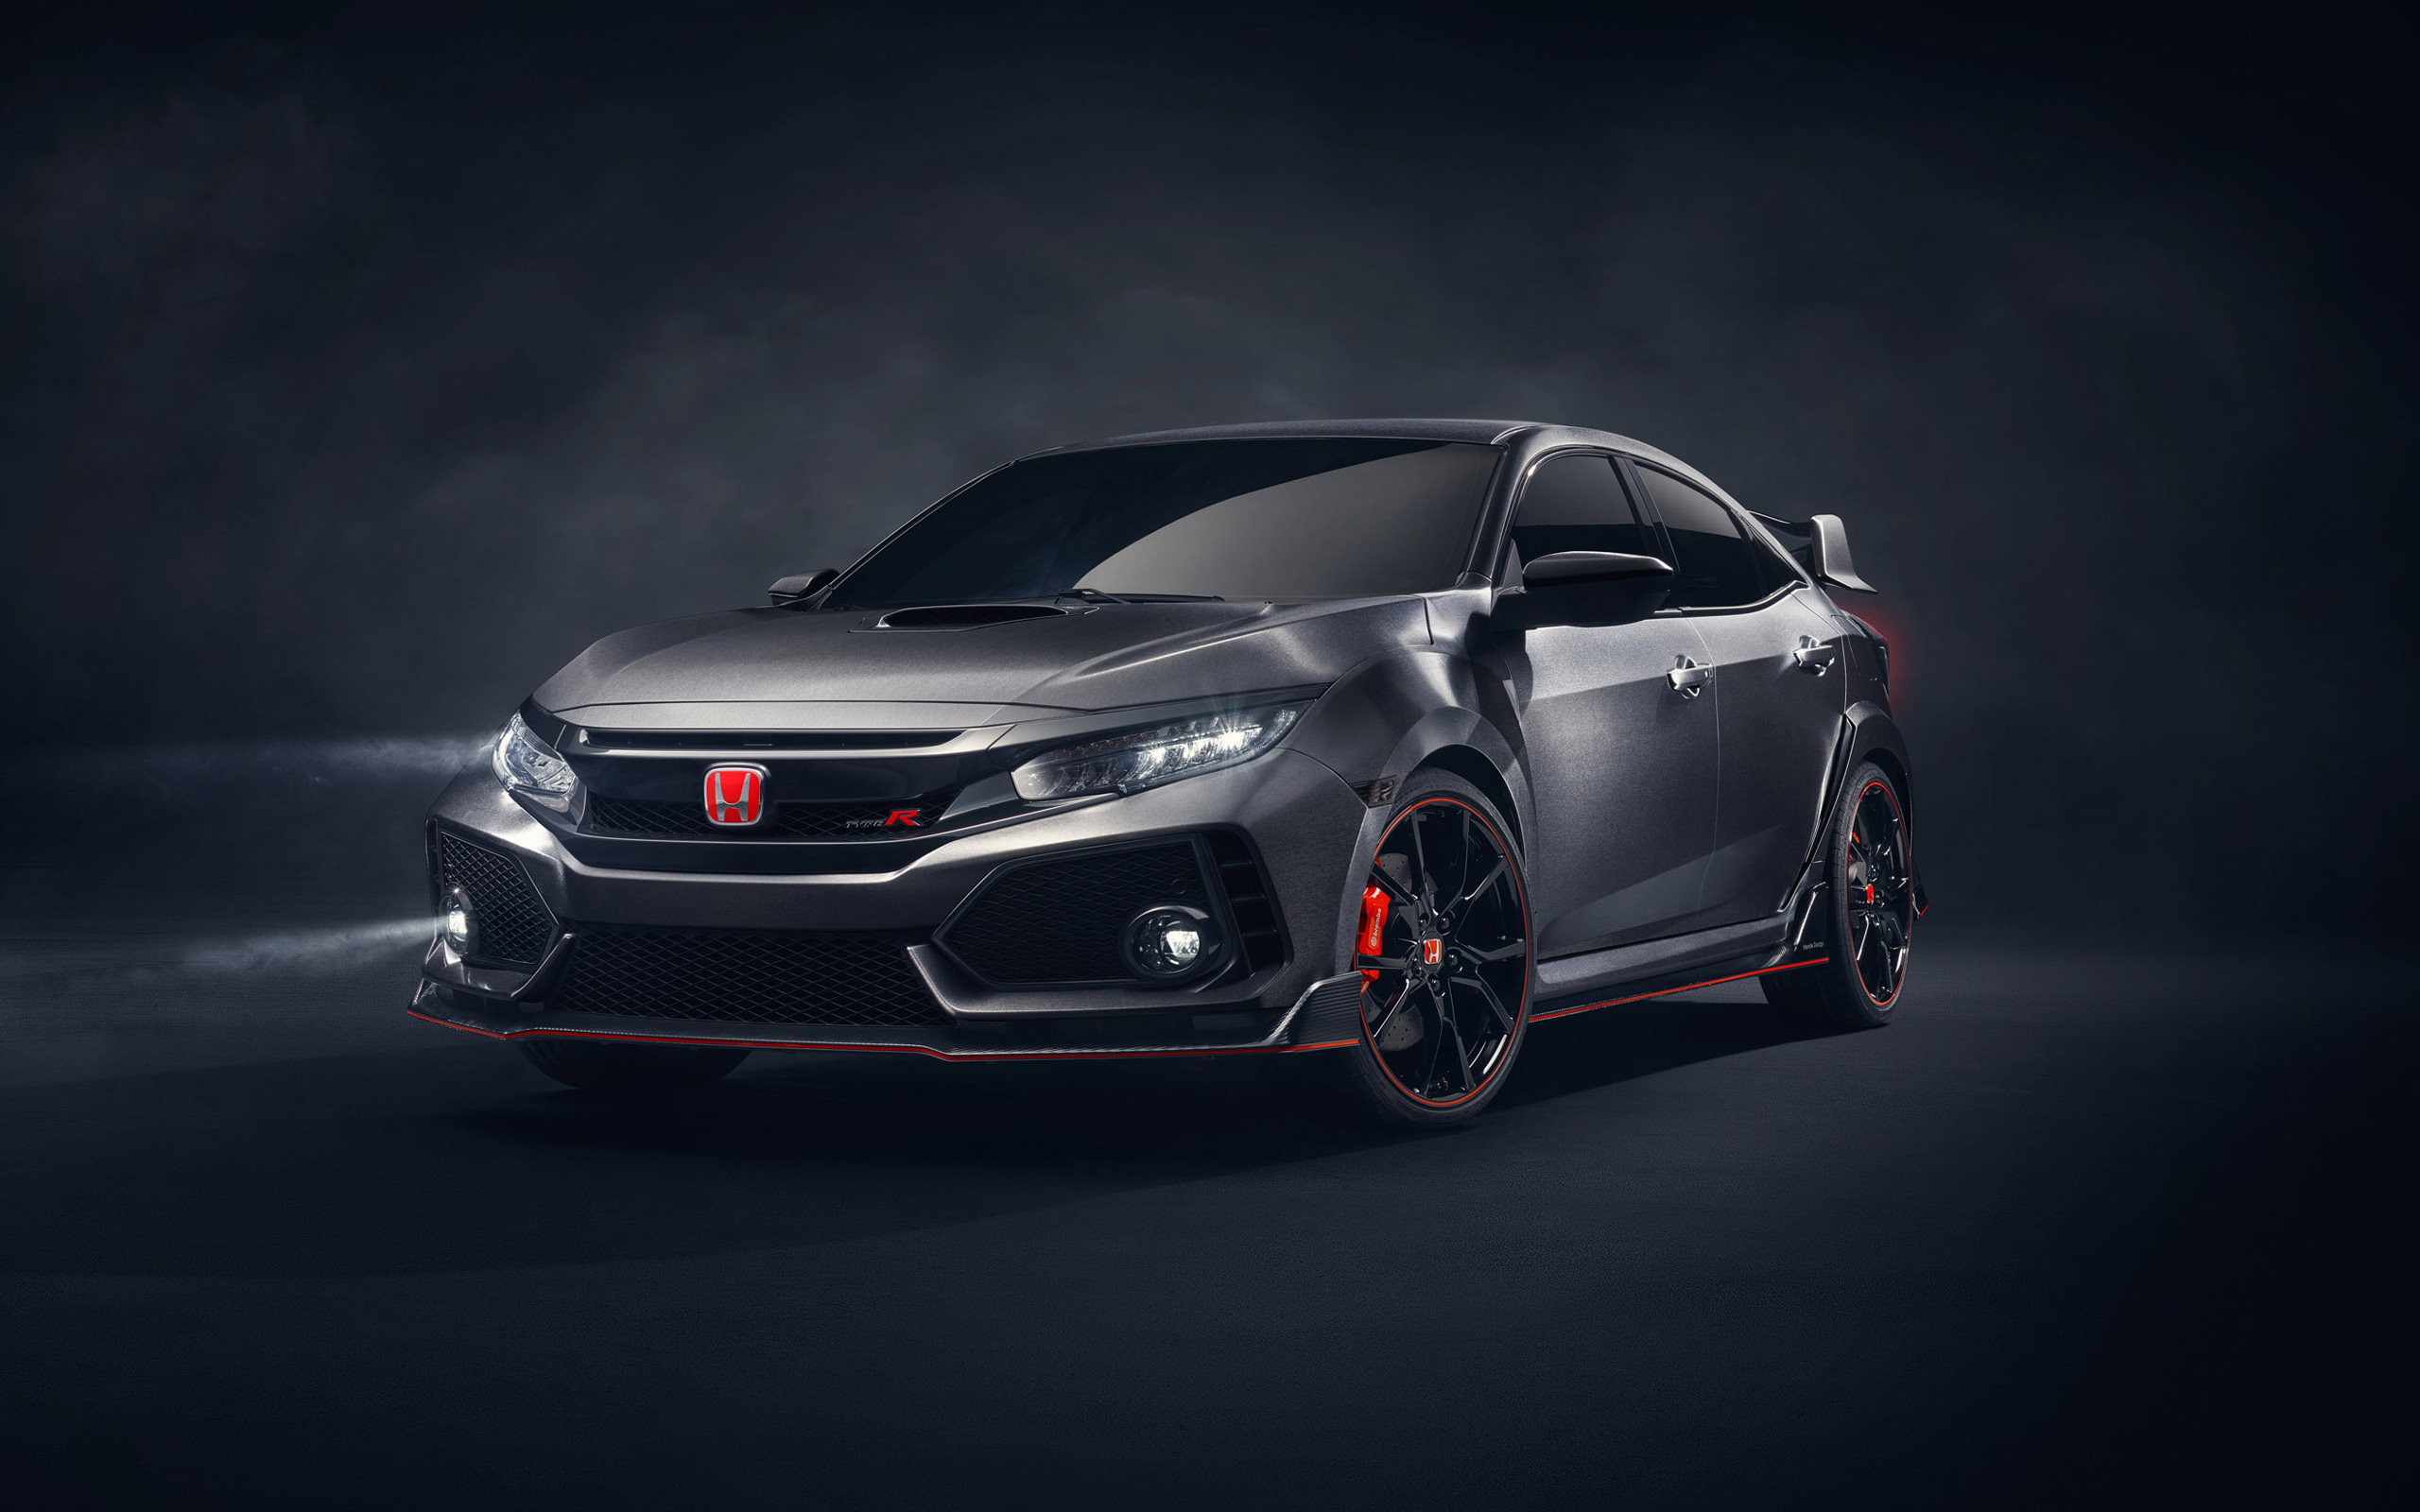 2017 Honda Civic Type R 2 Wallpaper | HD Car Wallpapers